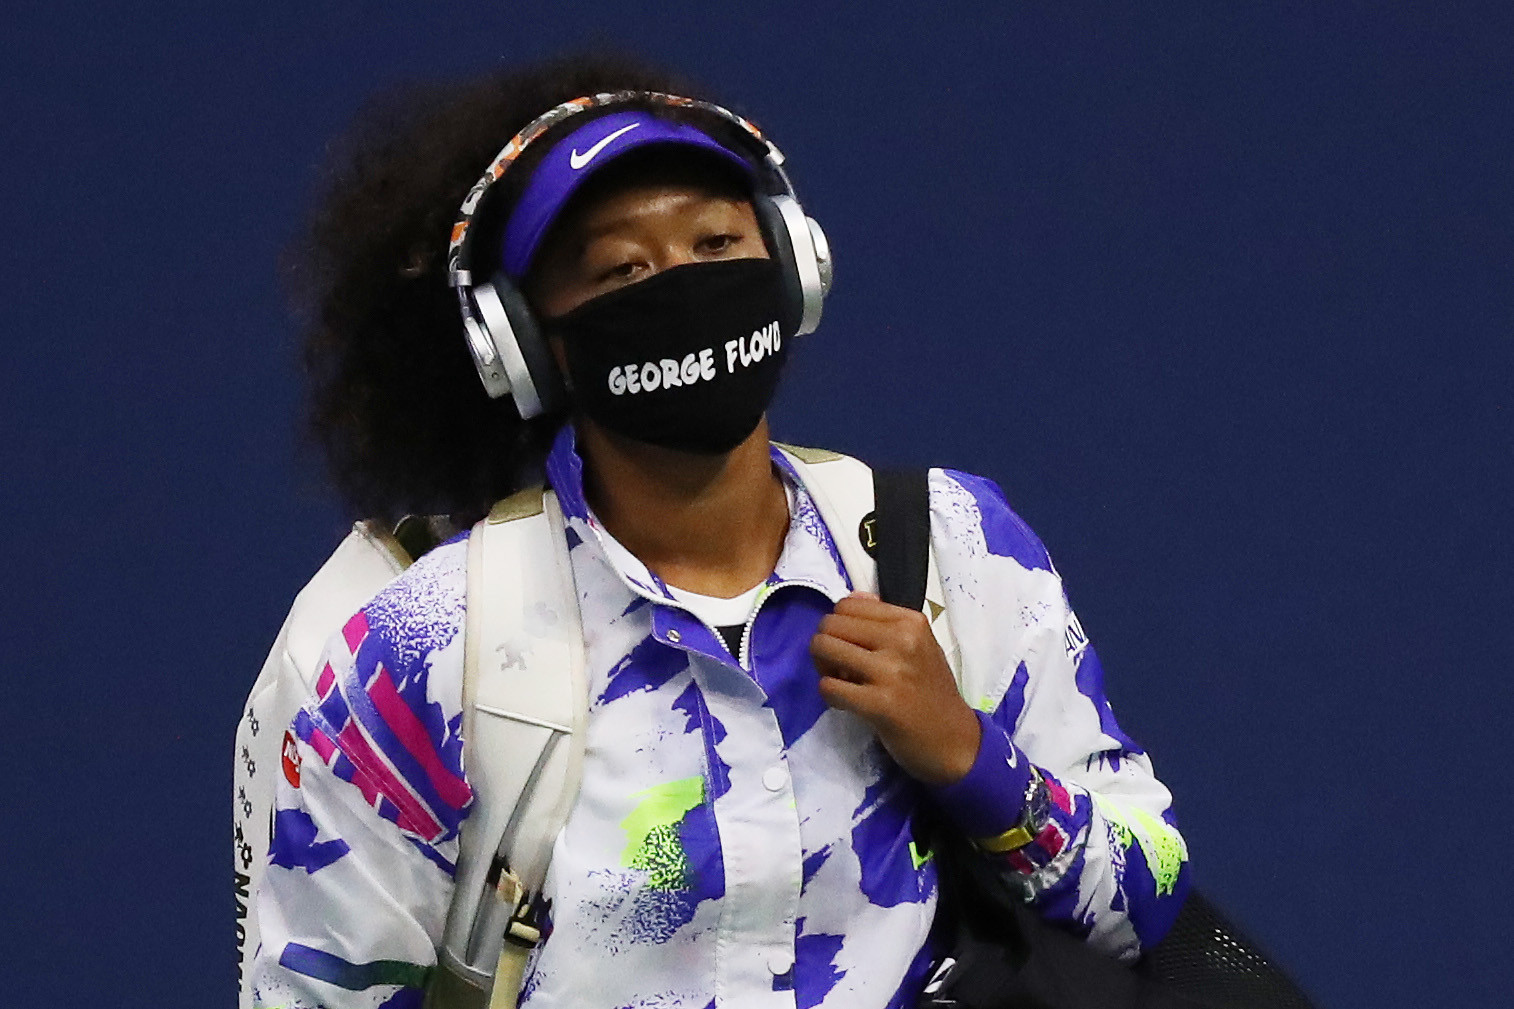 Naomi Osaka wore a mask bearing the name of George Floyd before and after her match with Shelby Rogers ©Getty Images